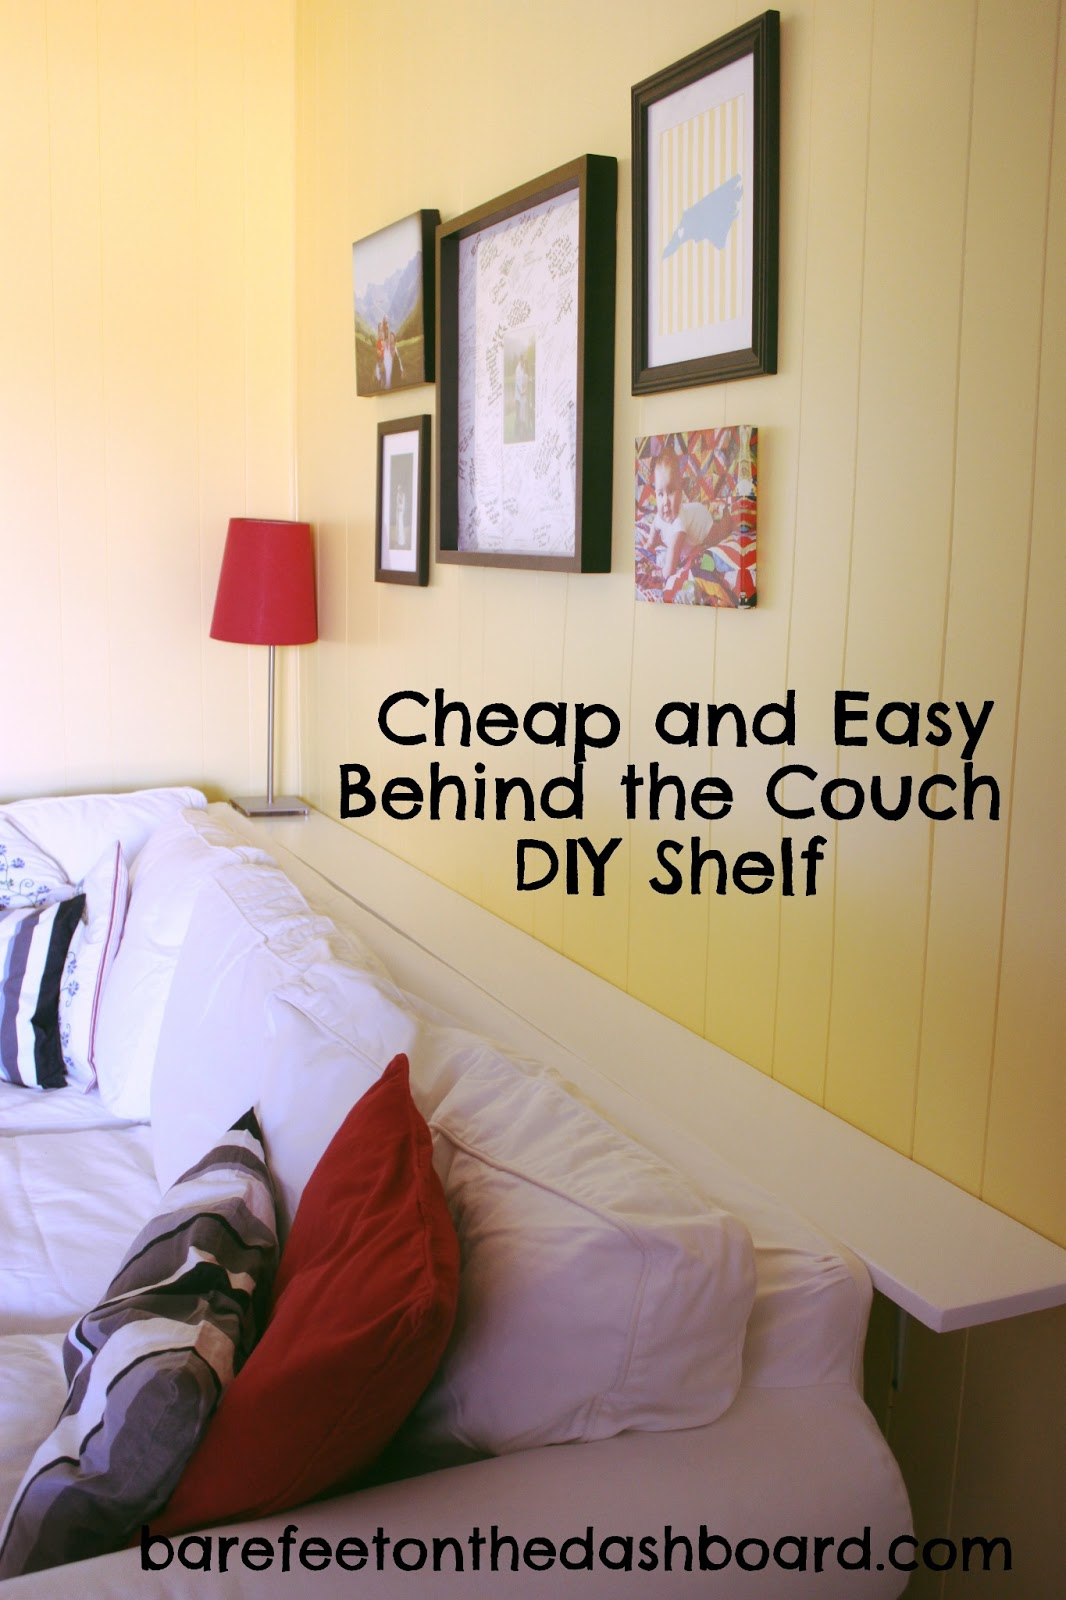 Duck creek diy cheap and easy but sturdy behind the couch shelf